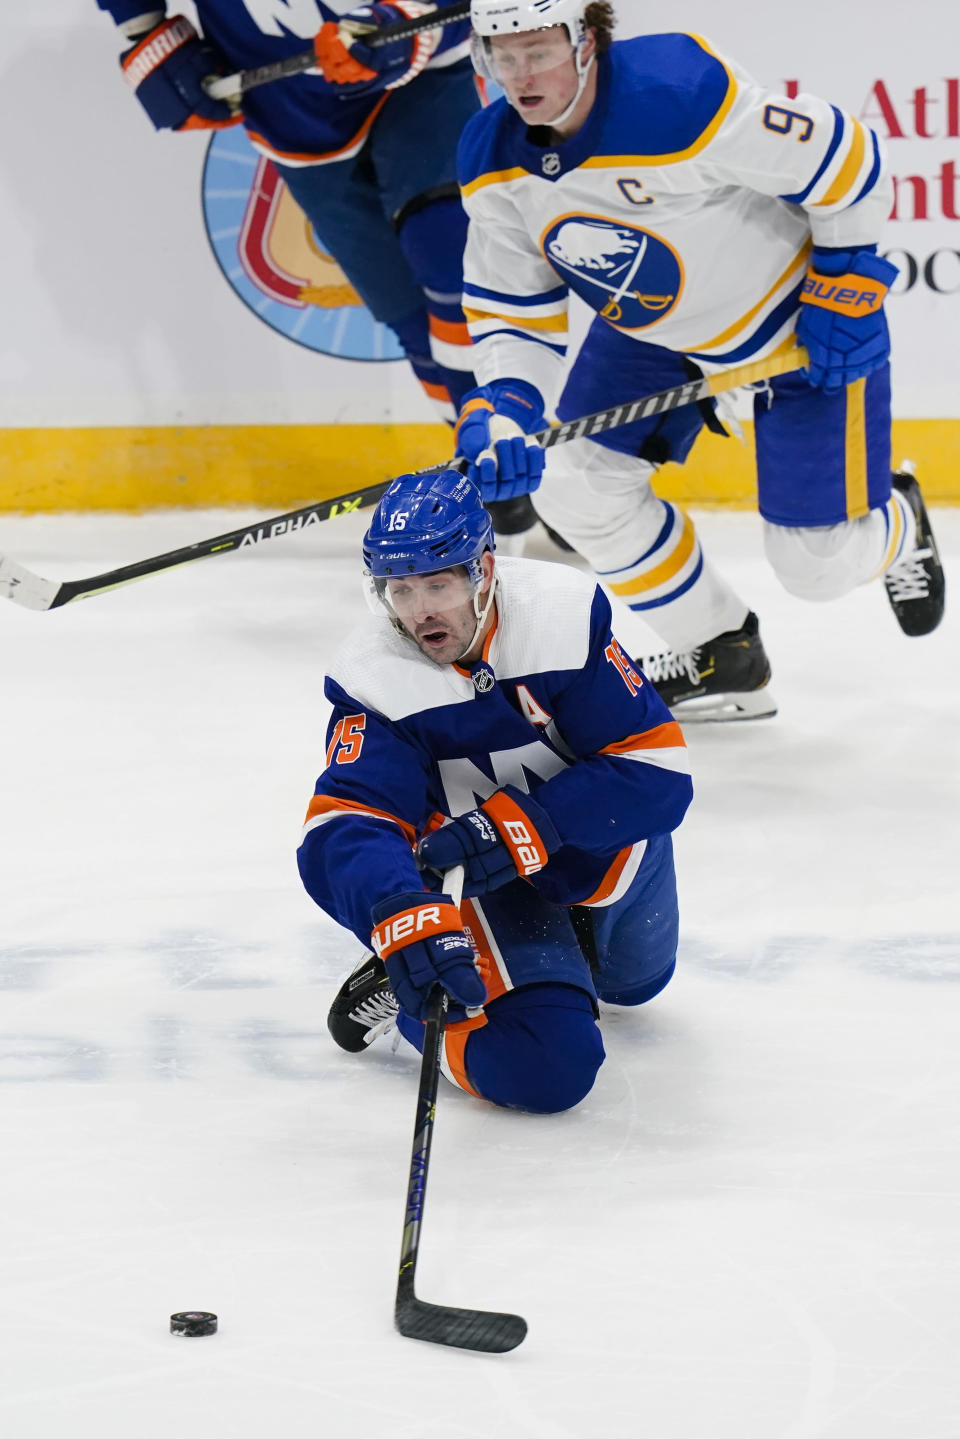 New York Islanders' Cal Clutterbuck (15) passes the puck away from Buffalo Sabres' Jack Eichel (9) during the second period of an NHL hockey game Thursday, March 4, 2021, in Uniondale, N.Y. (AP Photo/Frank Franklin II)